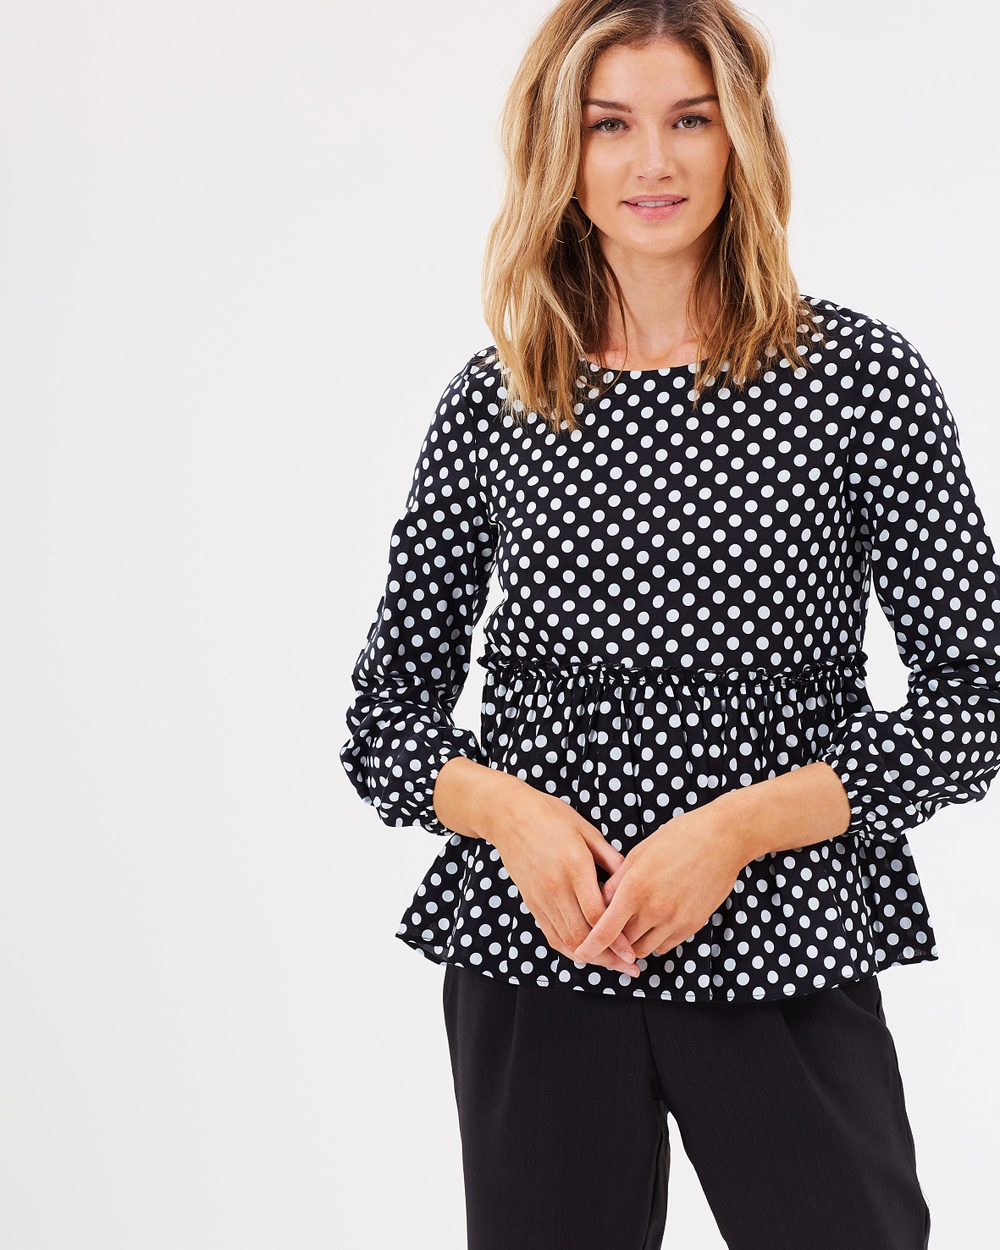 Atmos & Here ICONIC EXCLUSIVE Amy Swing Top Tops Black & White Polkadot ICONIC EXCLUSIVE Amy Swing Top